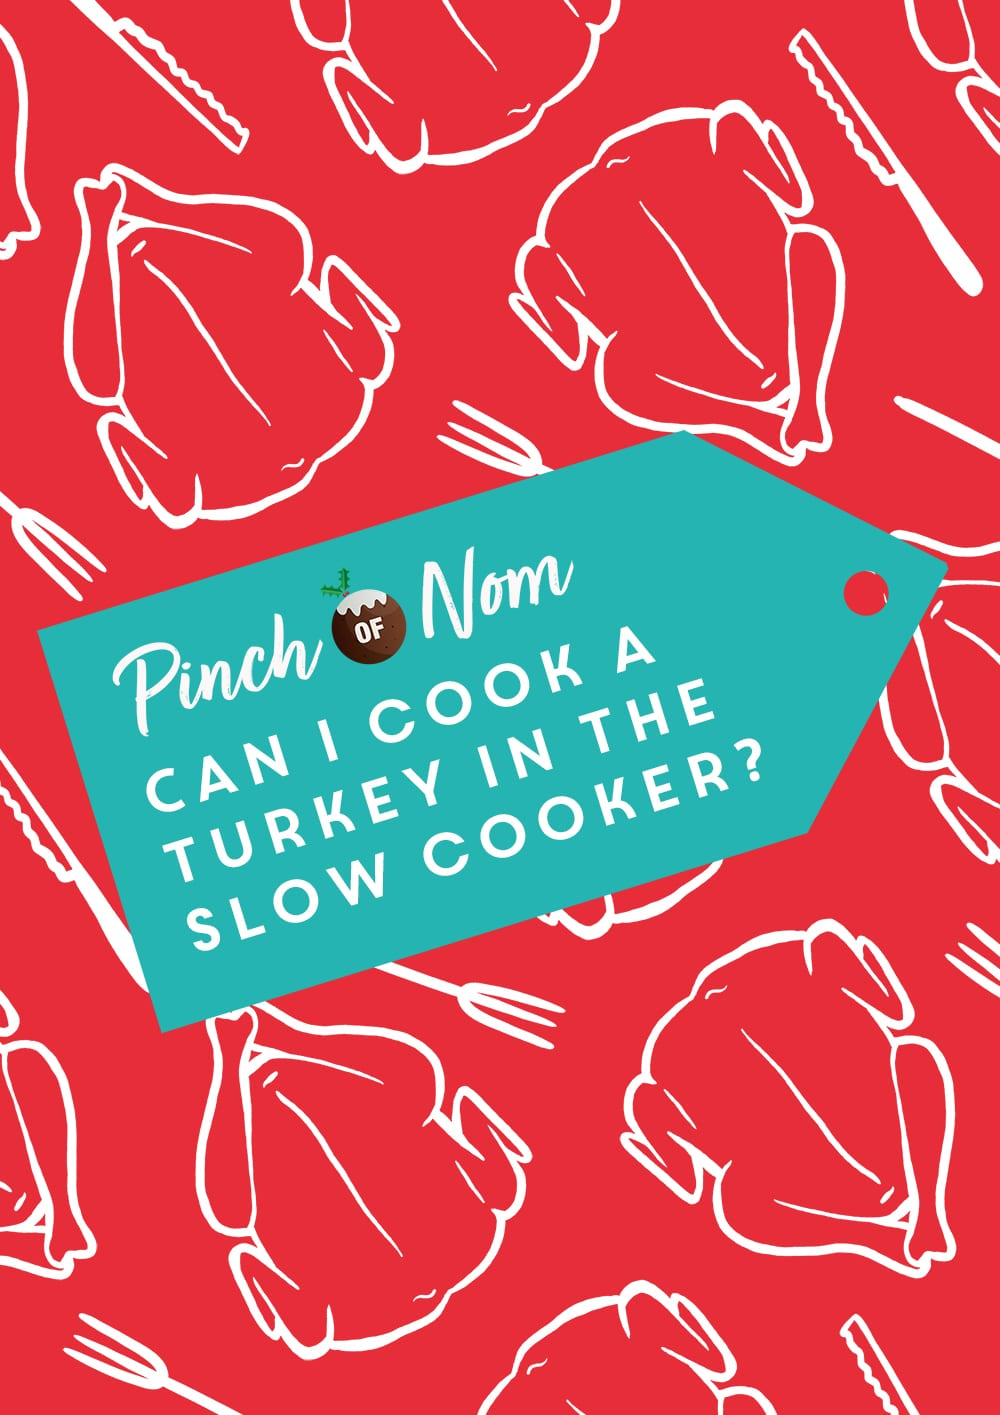 Can I Cook a Turkey in the Slow Cooker? | Pinch of Nom Slimming Recipes